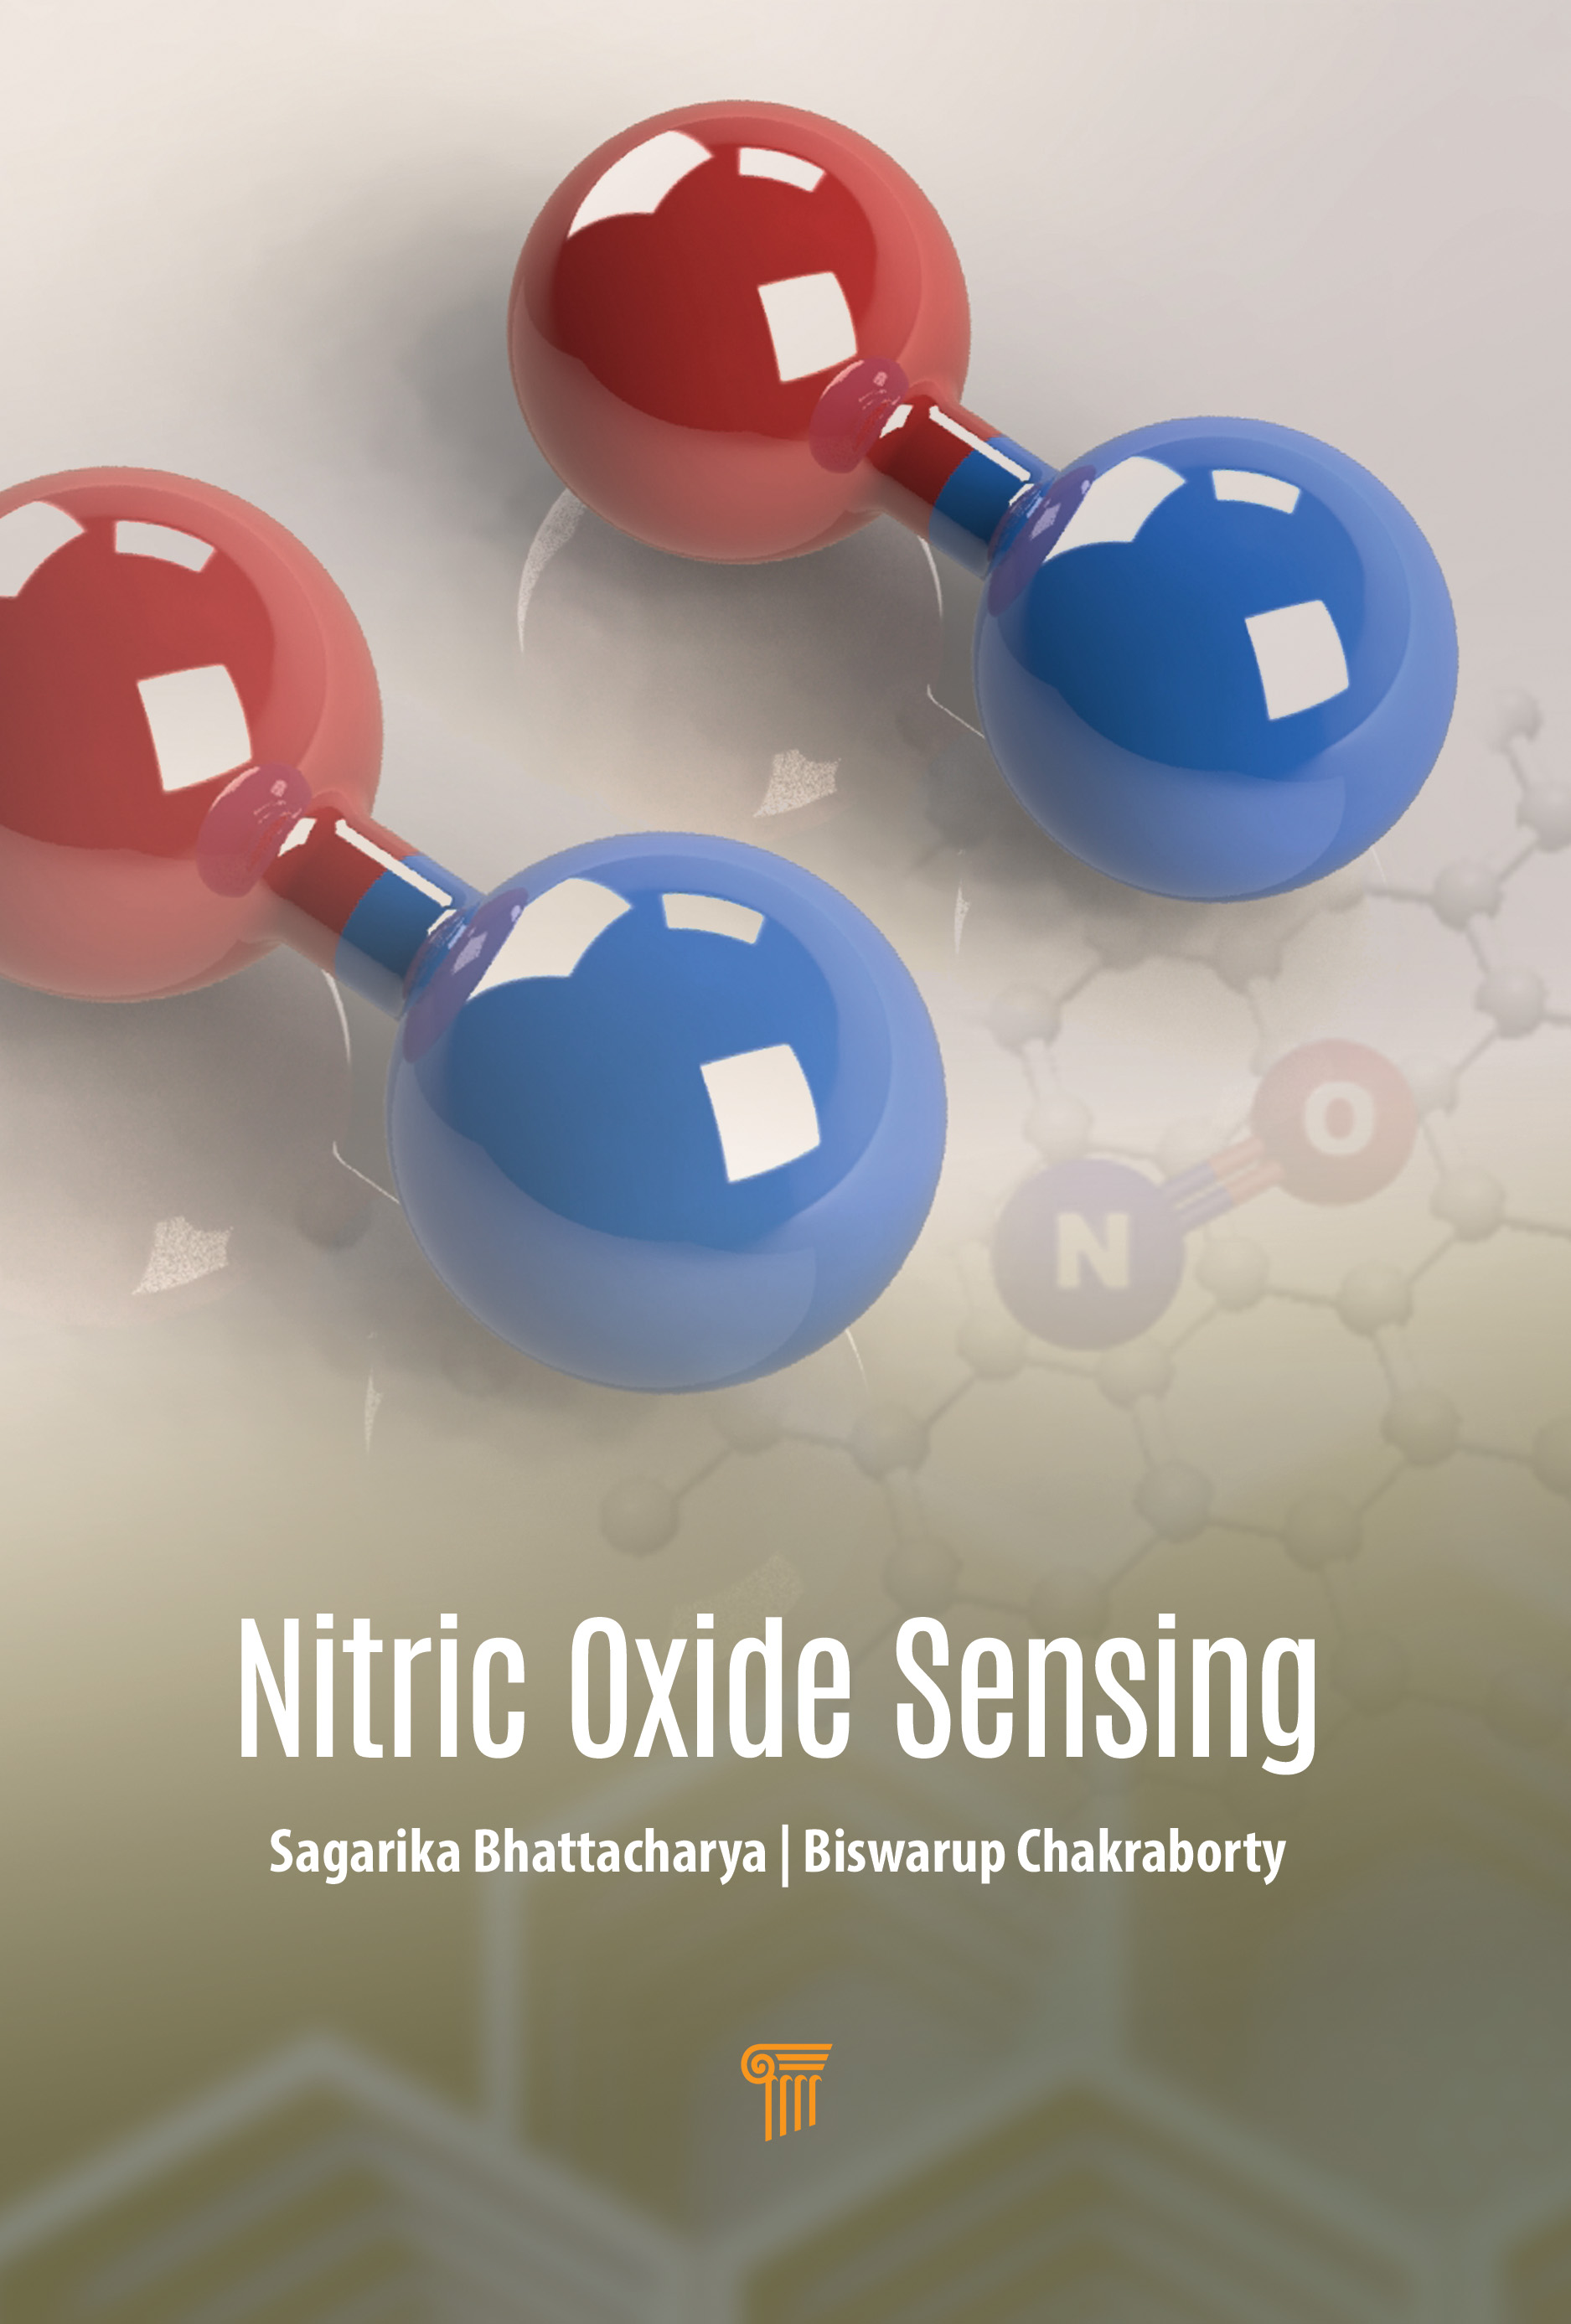 Nitric Oxide Sensing with Carbon Nanomaterials